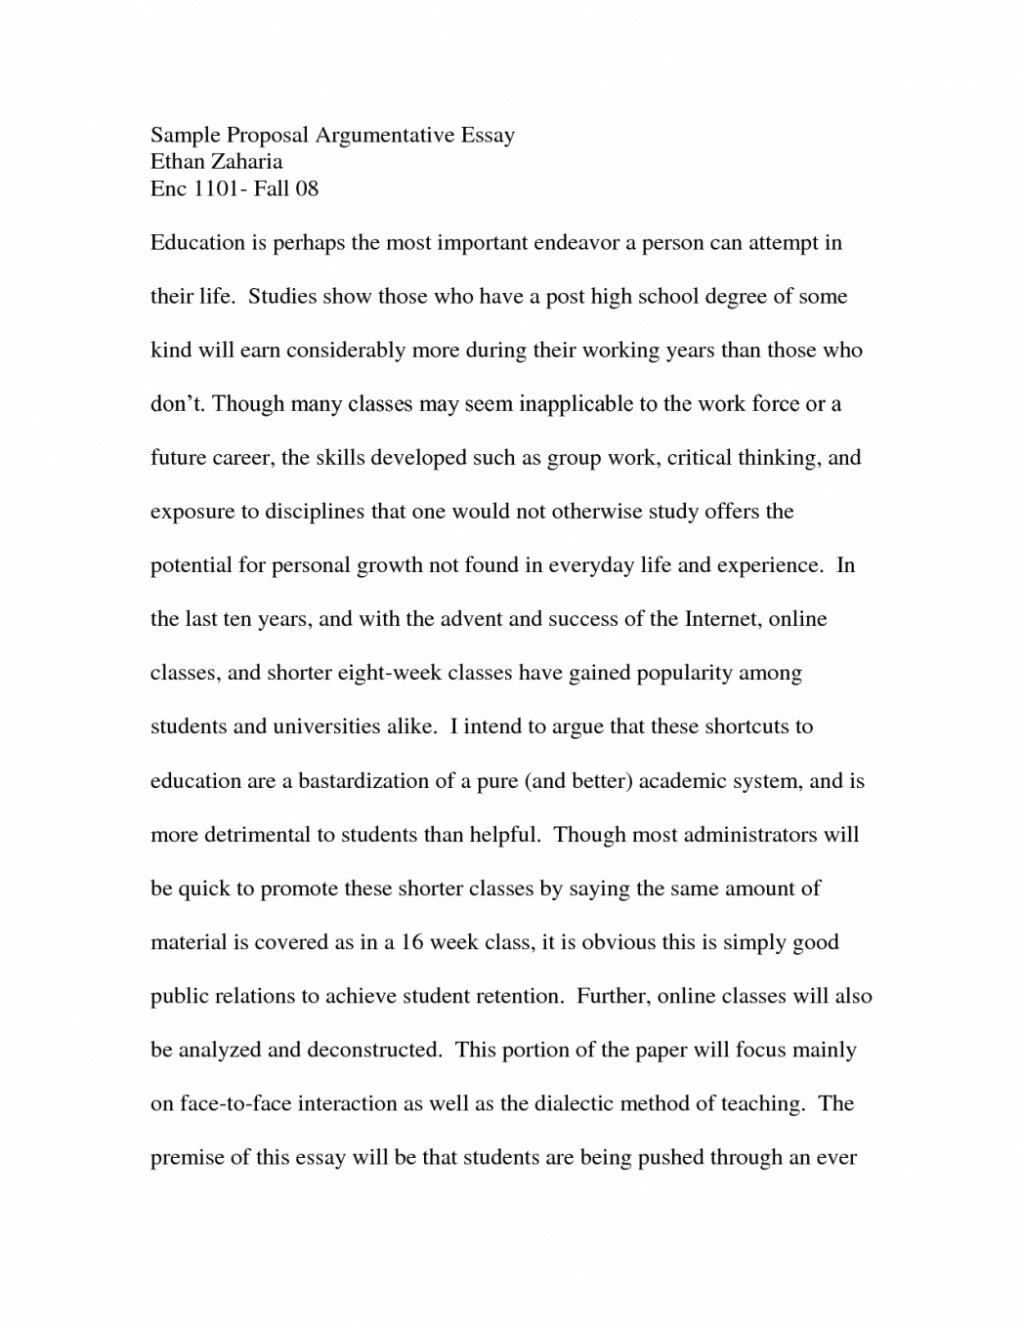 016 Informative Essay Example On Abortion High School Argumentative Conclusion Examples Argument Against Agrum Sample Dreaded Prompts Topics 2018 Middle Large